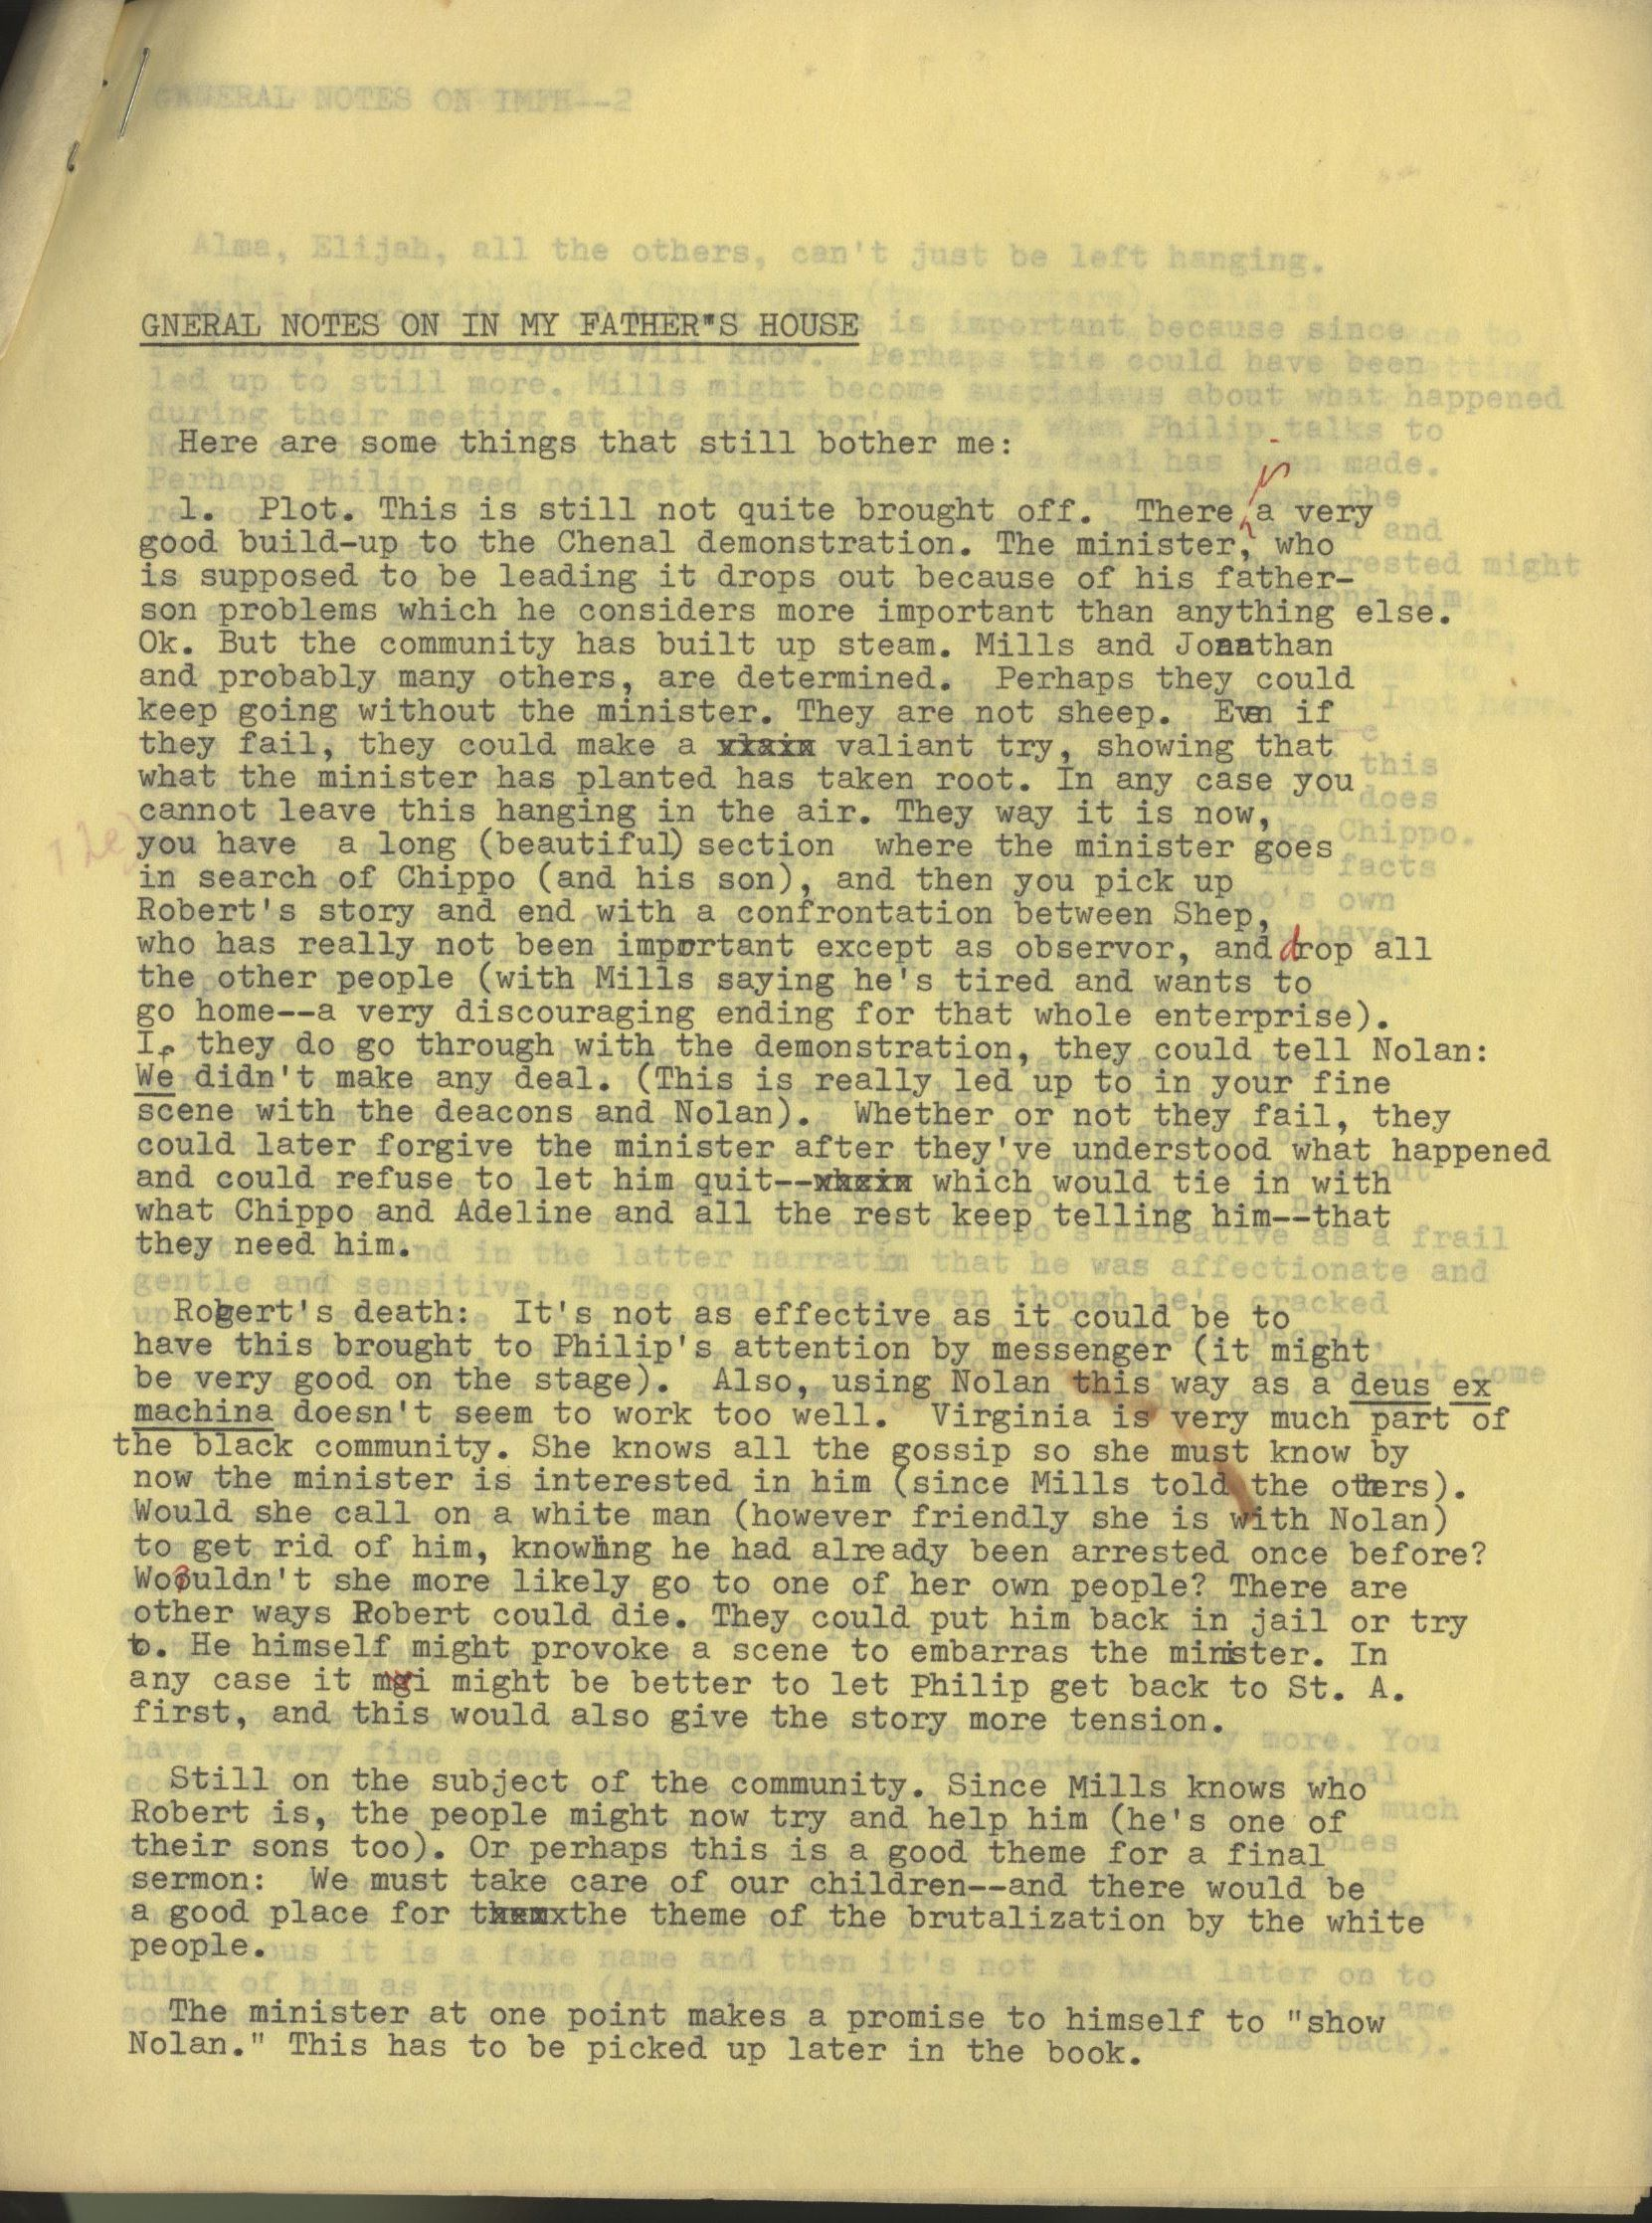 Dorthea Oppenheimer general notes on In My Father's House